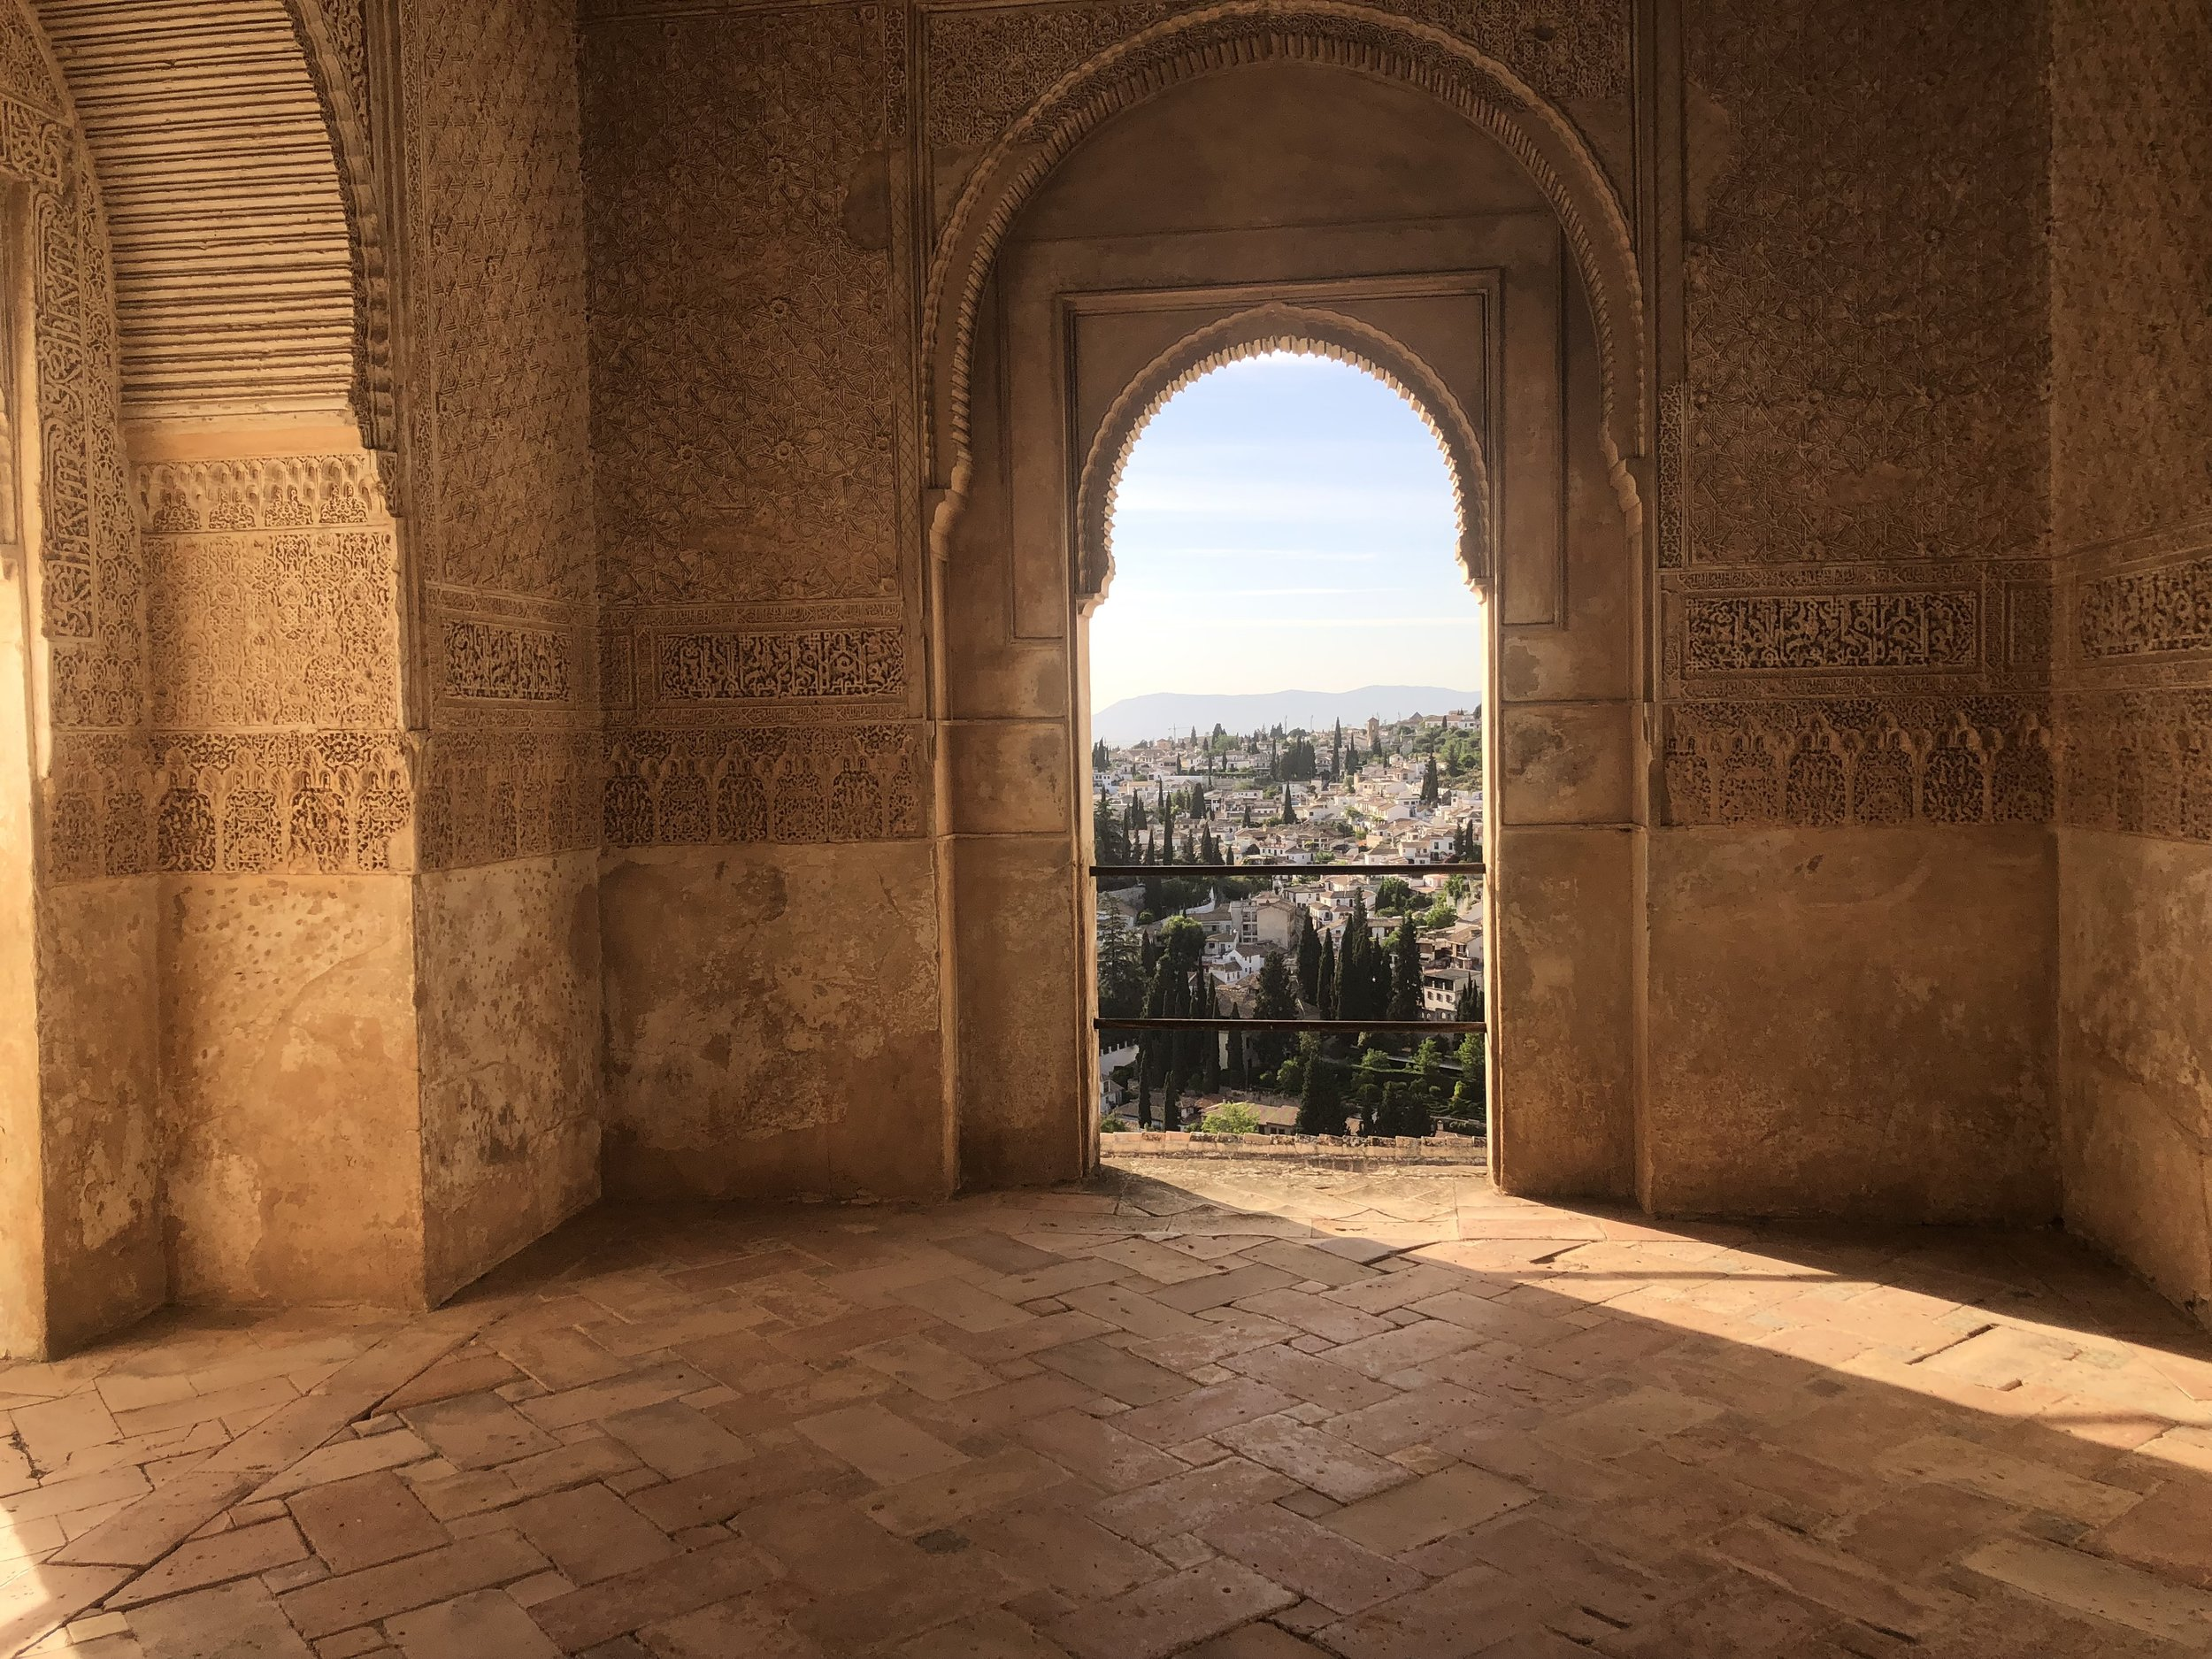 The view from within the Alhambra in Granada.